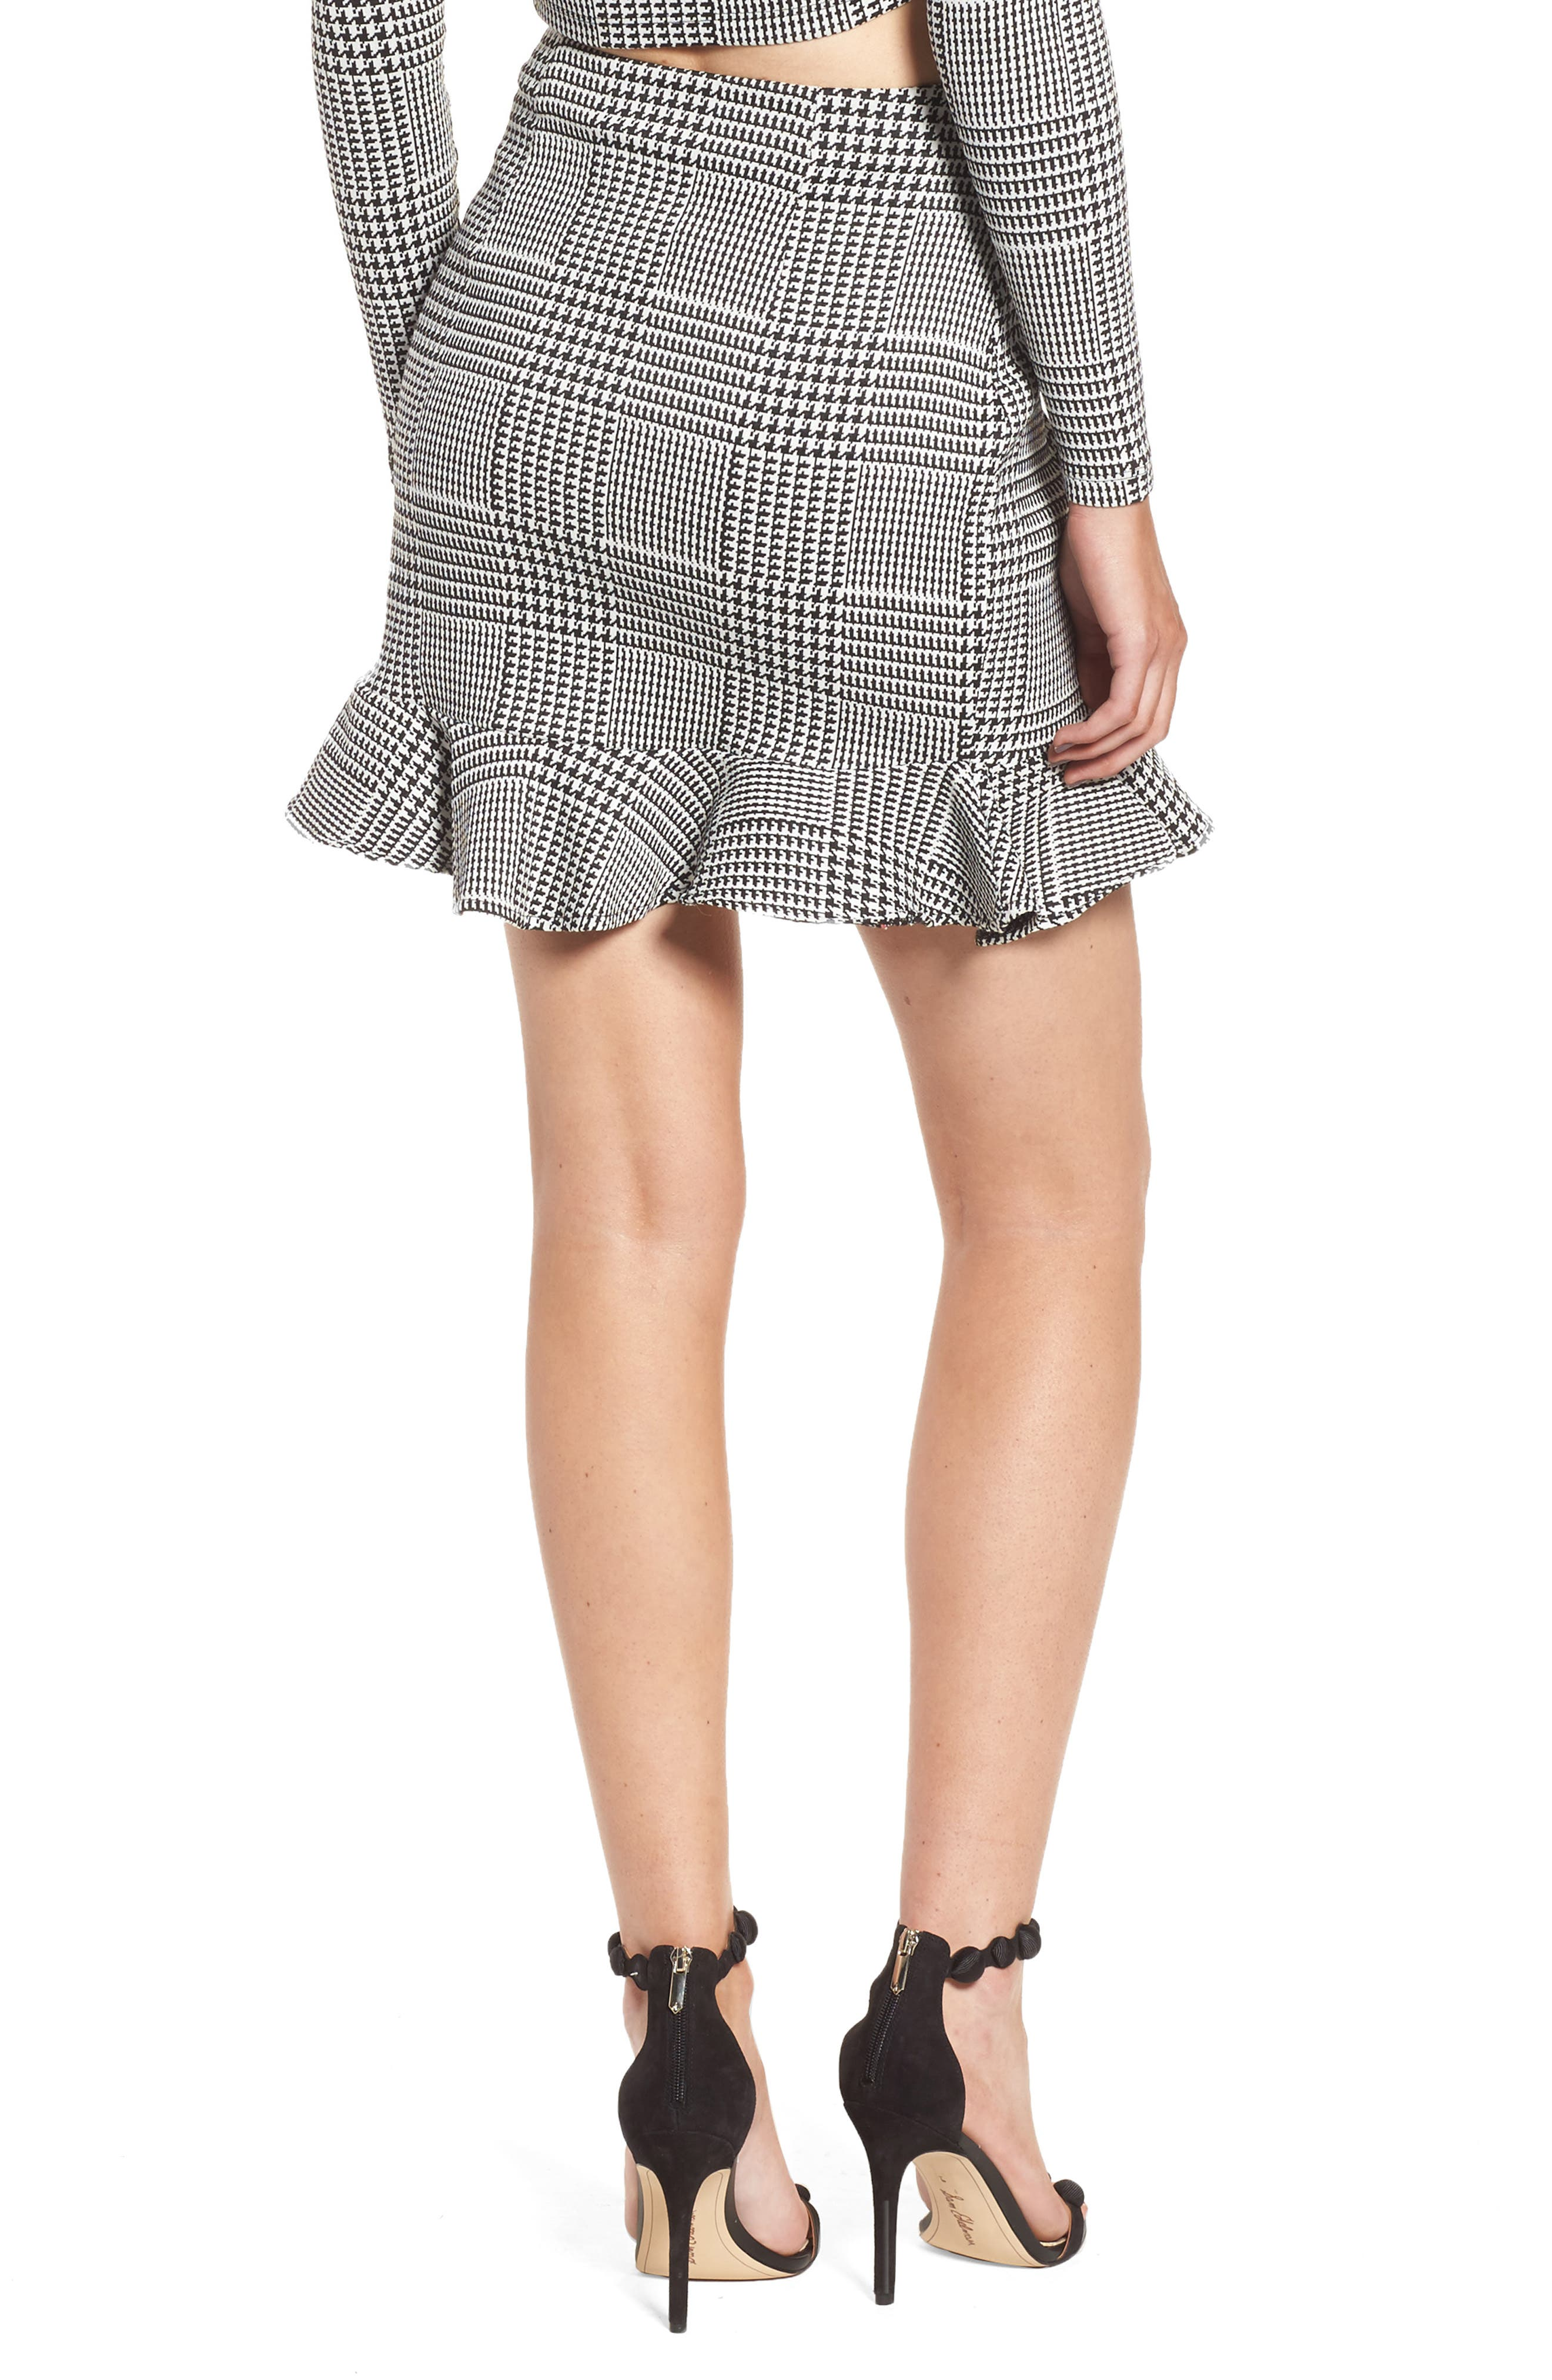 Affection Ruffle Houndstooth Skirt,                             Alternate thumbnail 2, color,                             020